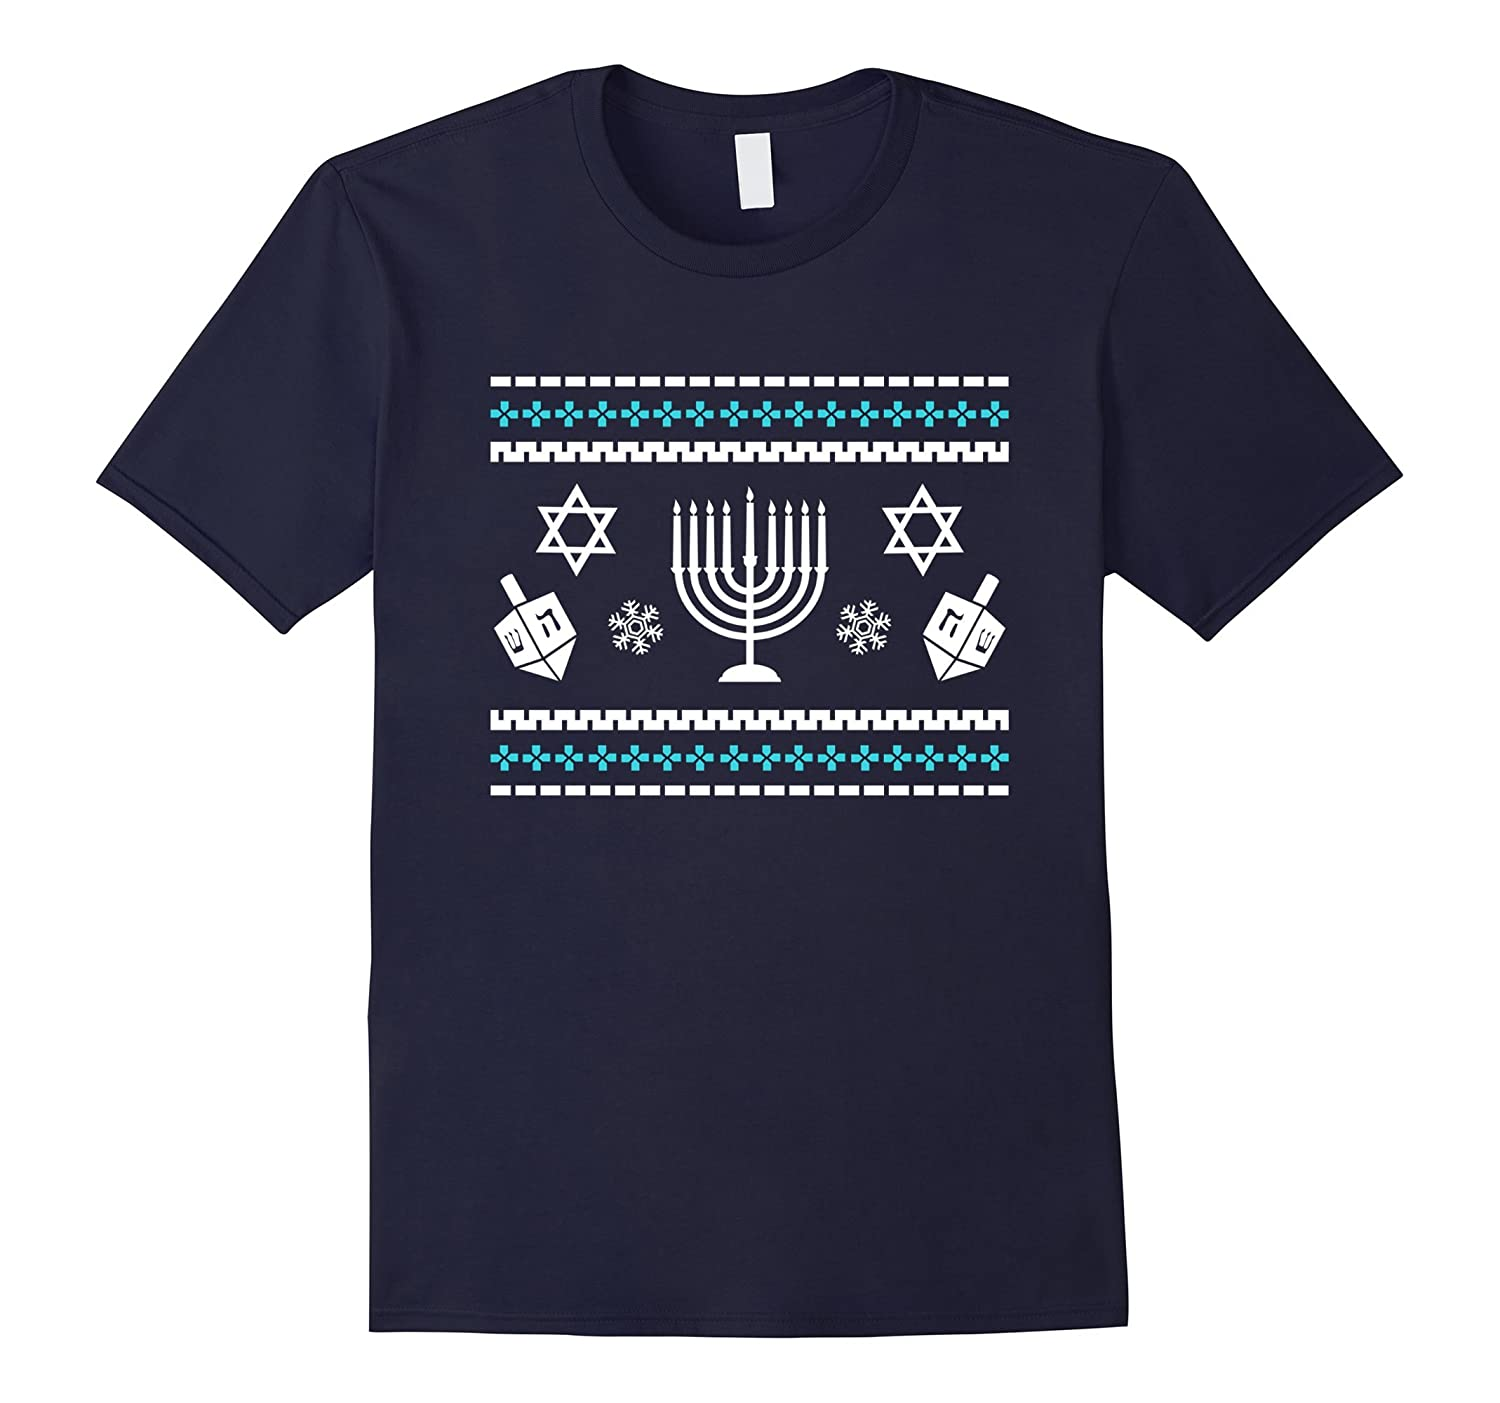 Hanukkah Ugly Sweater T-Shirt, Funny Gift For Men Or Women-CL